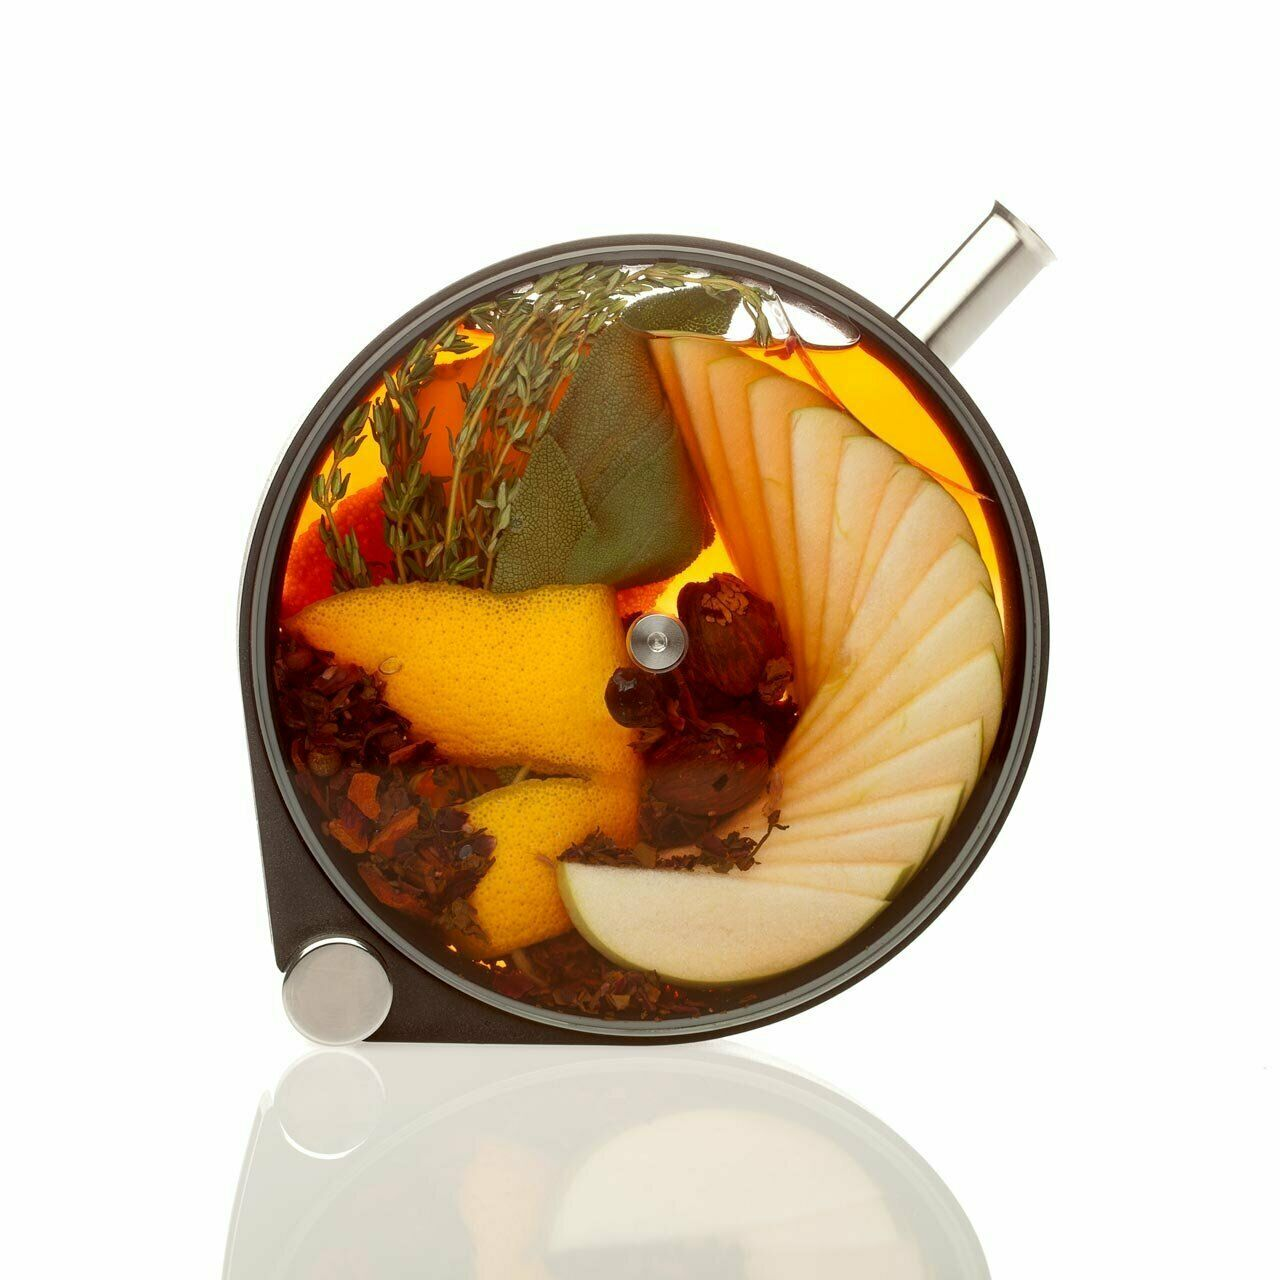 Crucial Detail The Porthole Infuser beautiful infusion vessel designed